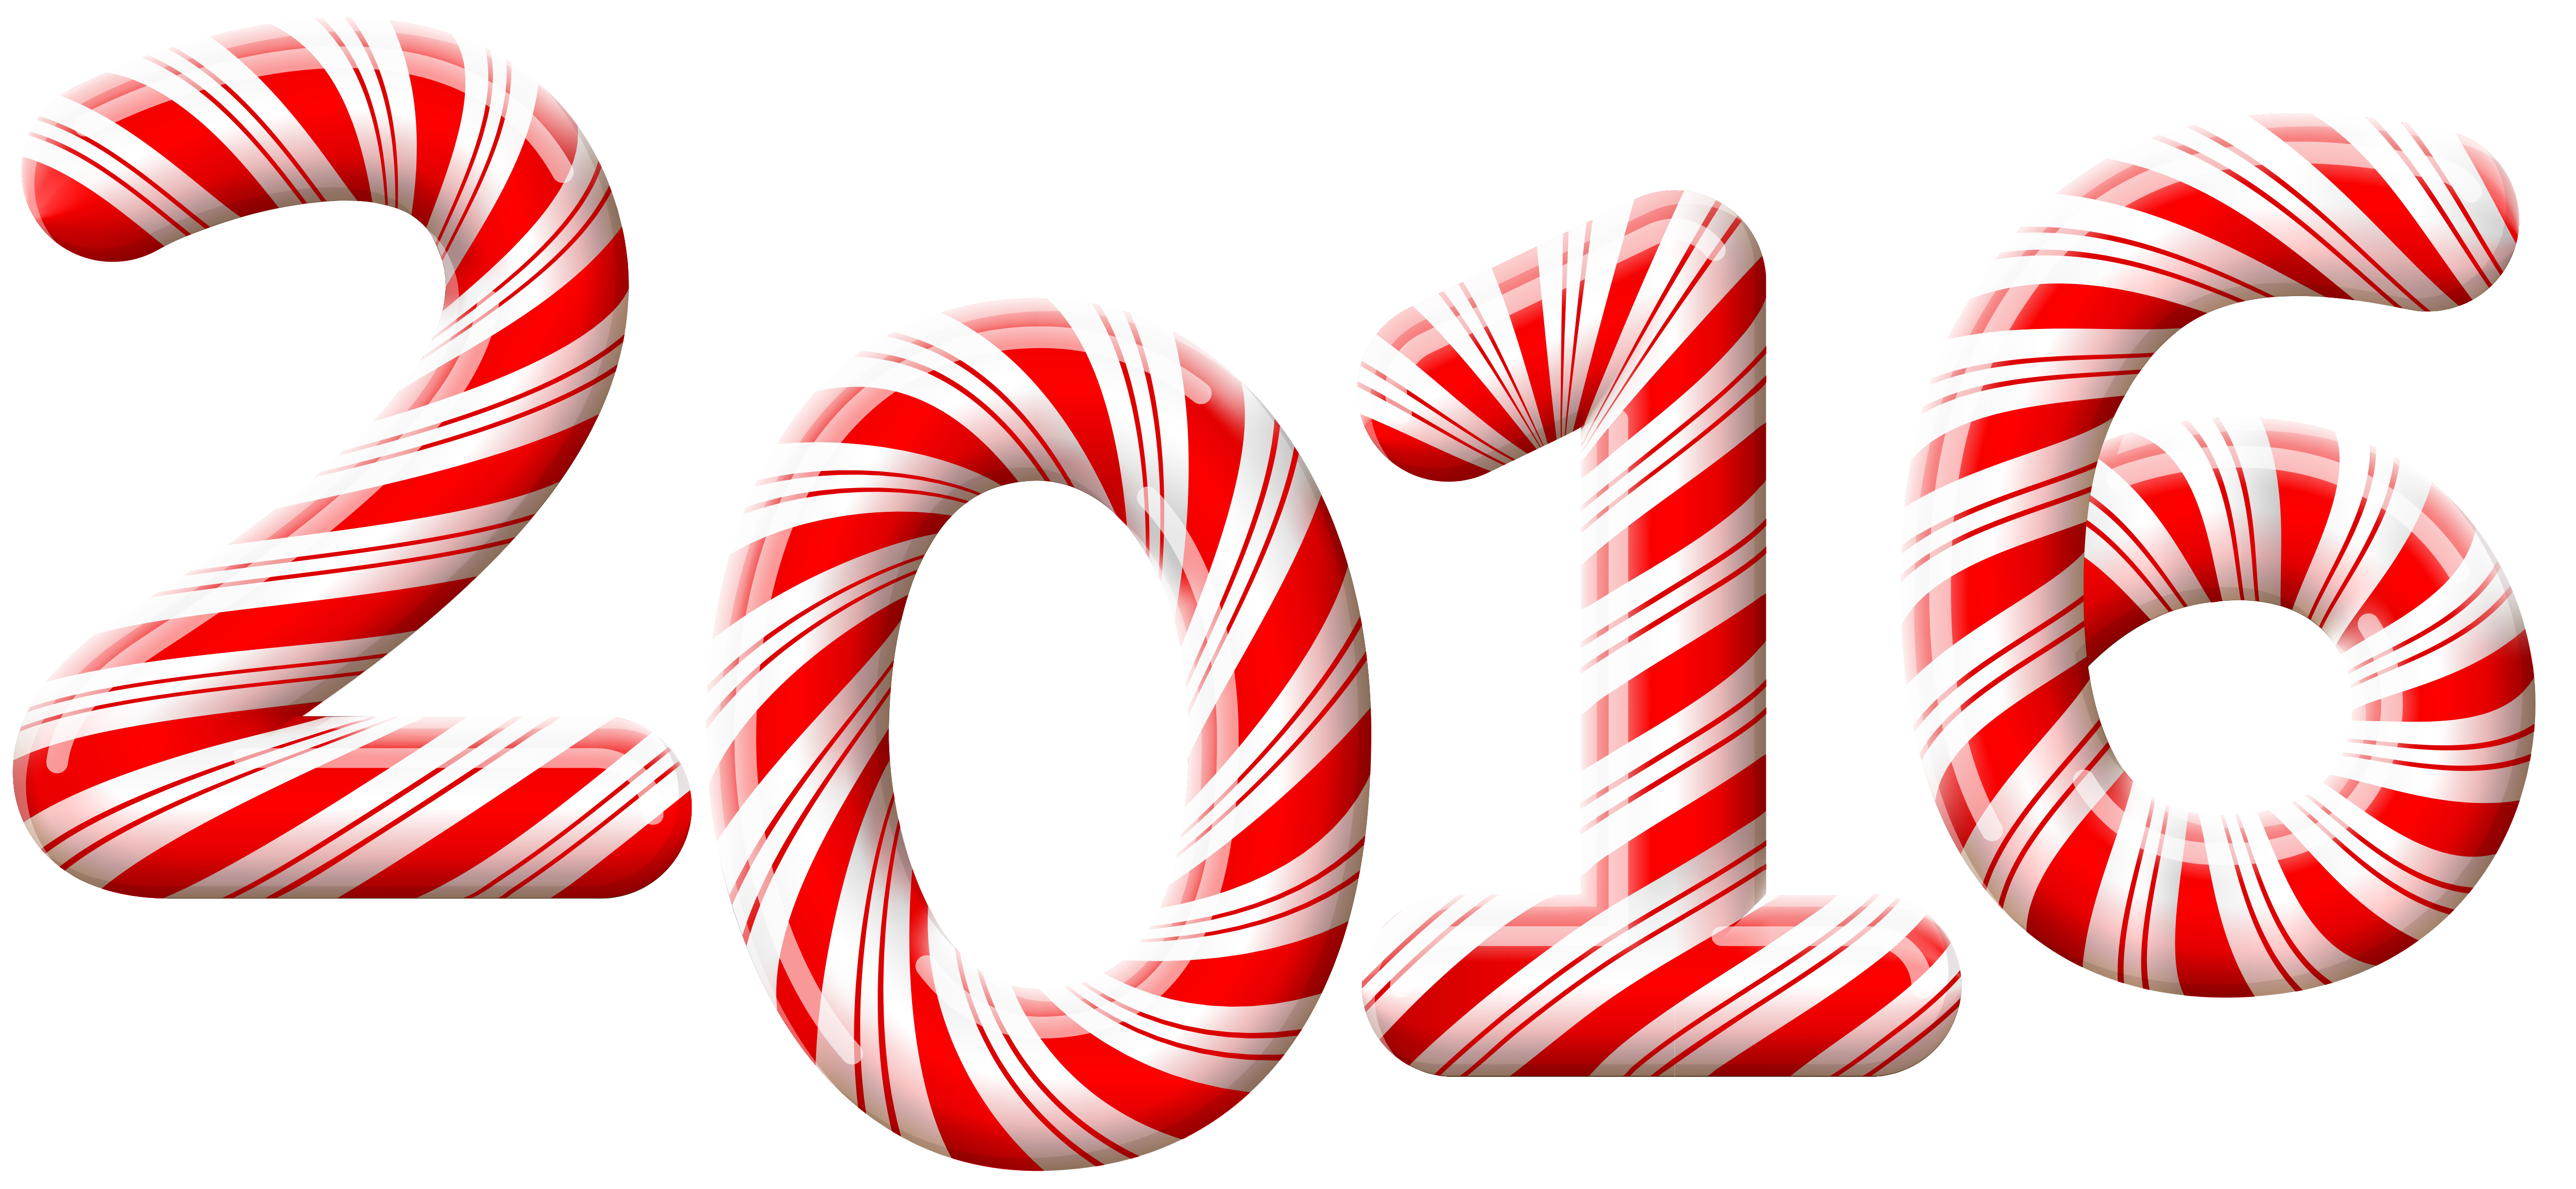 clipart black and white download 2016 clipart.  candy cane png